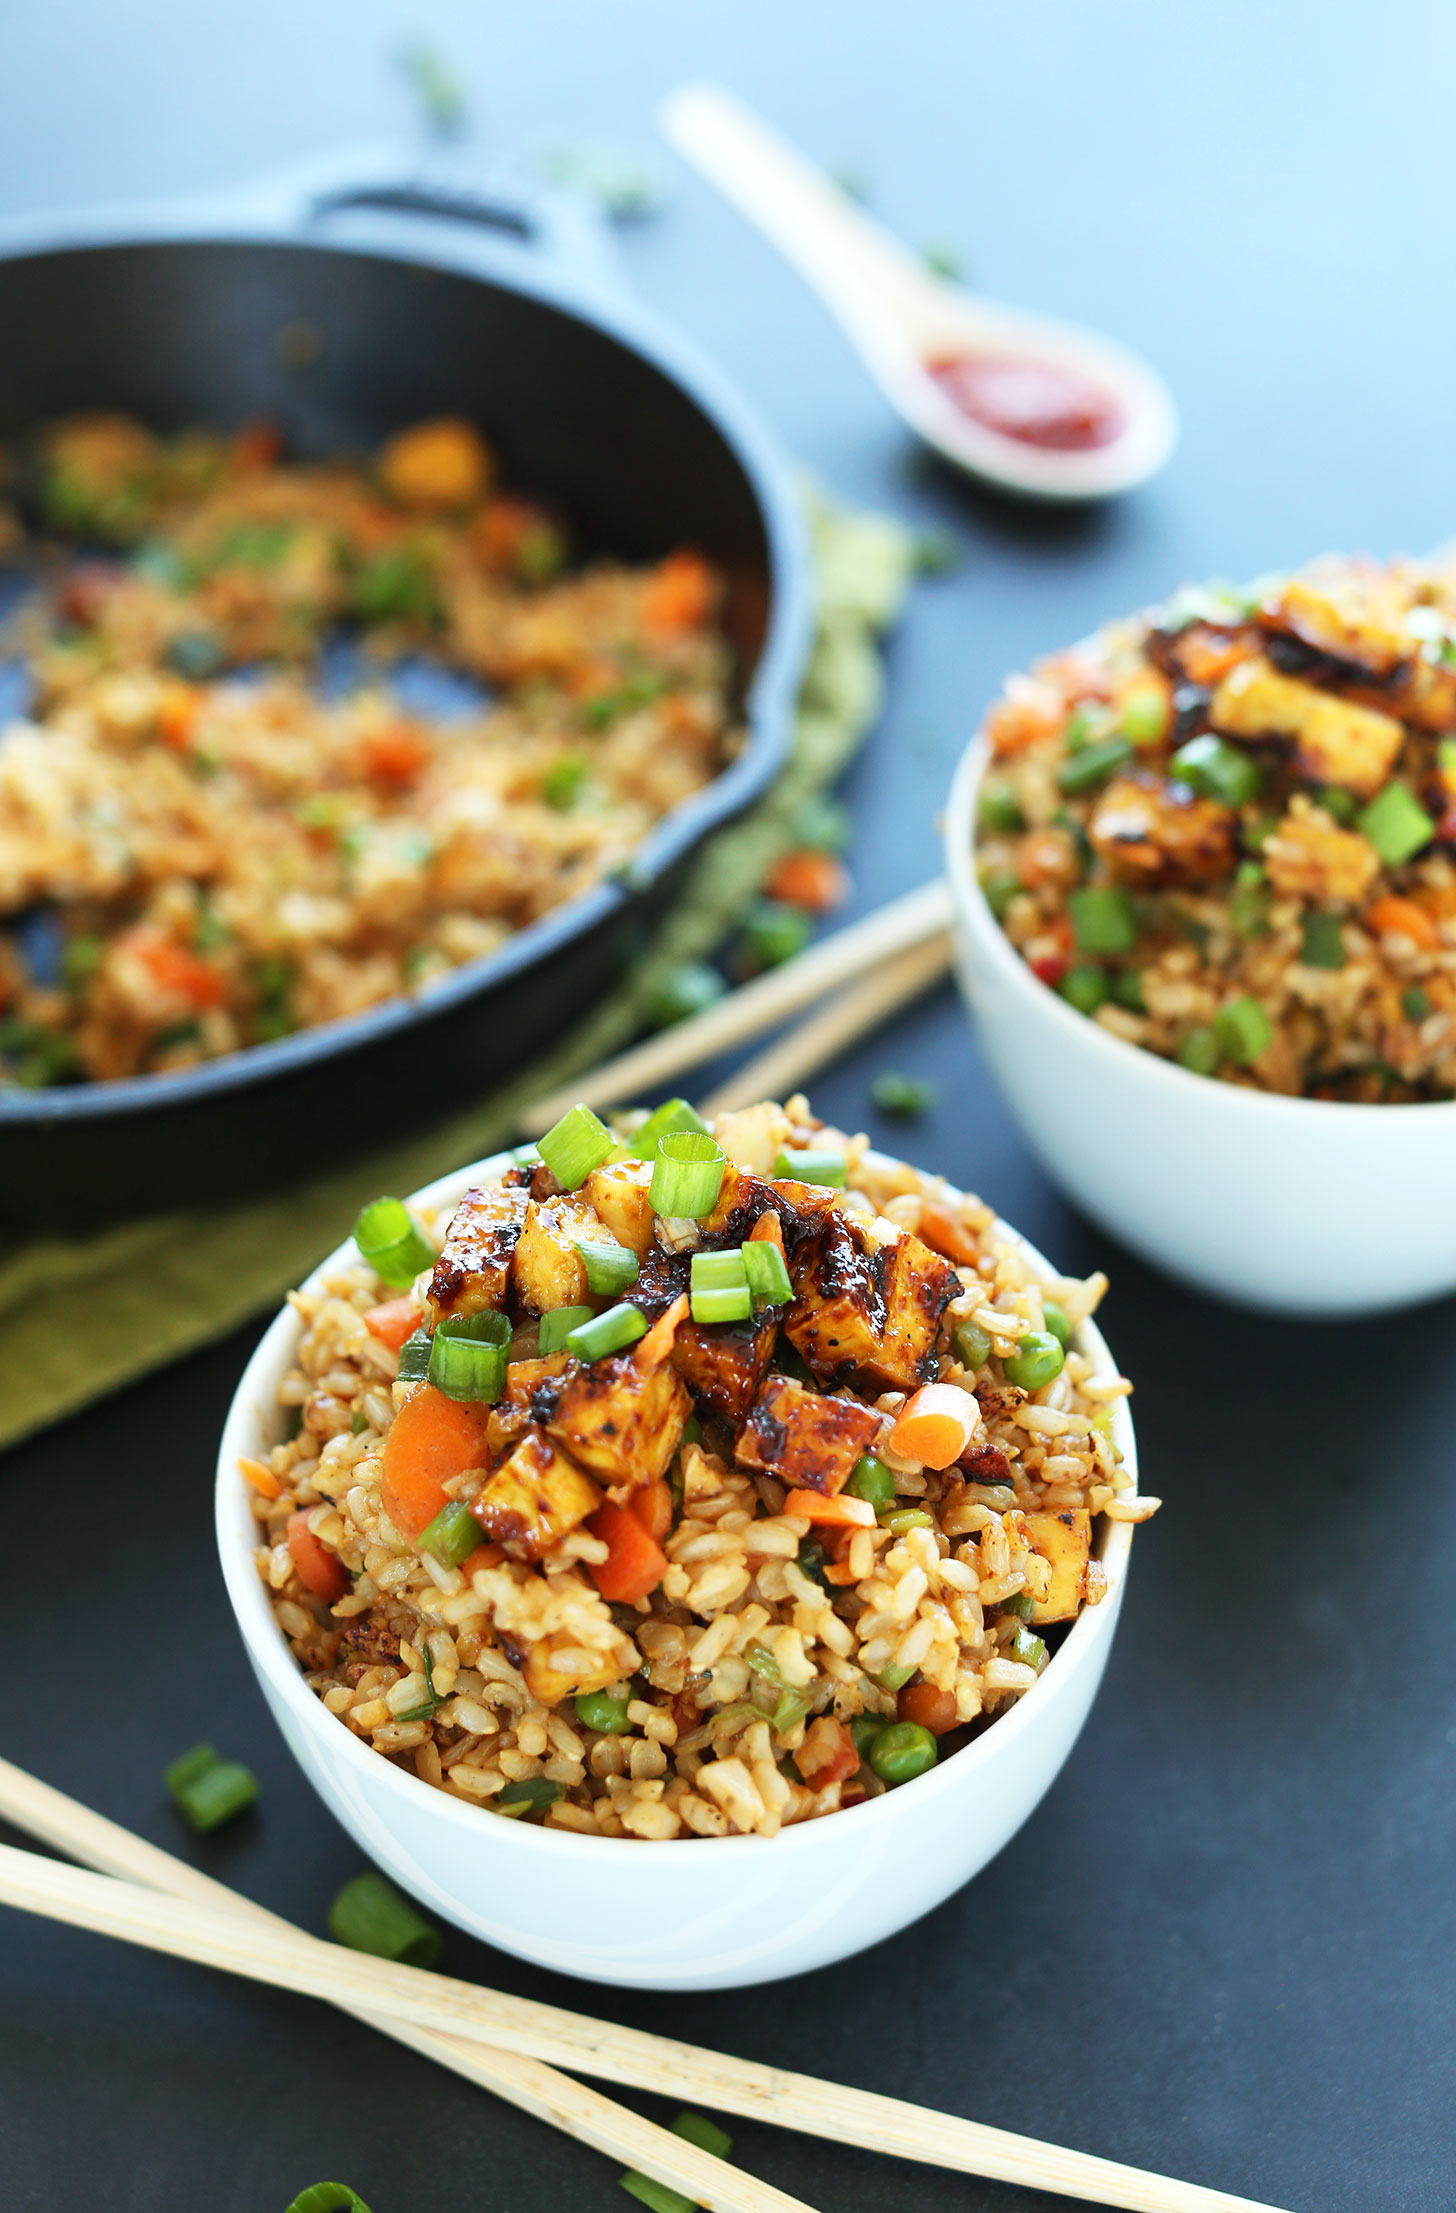 Healthy Vegan Chinese Food Recipes